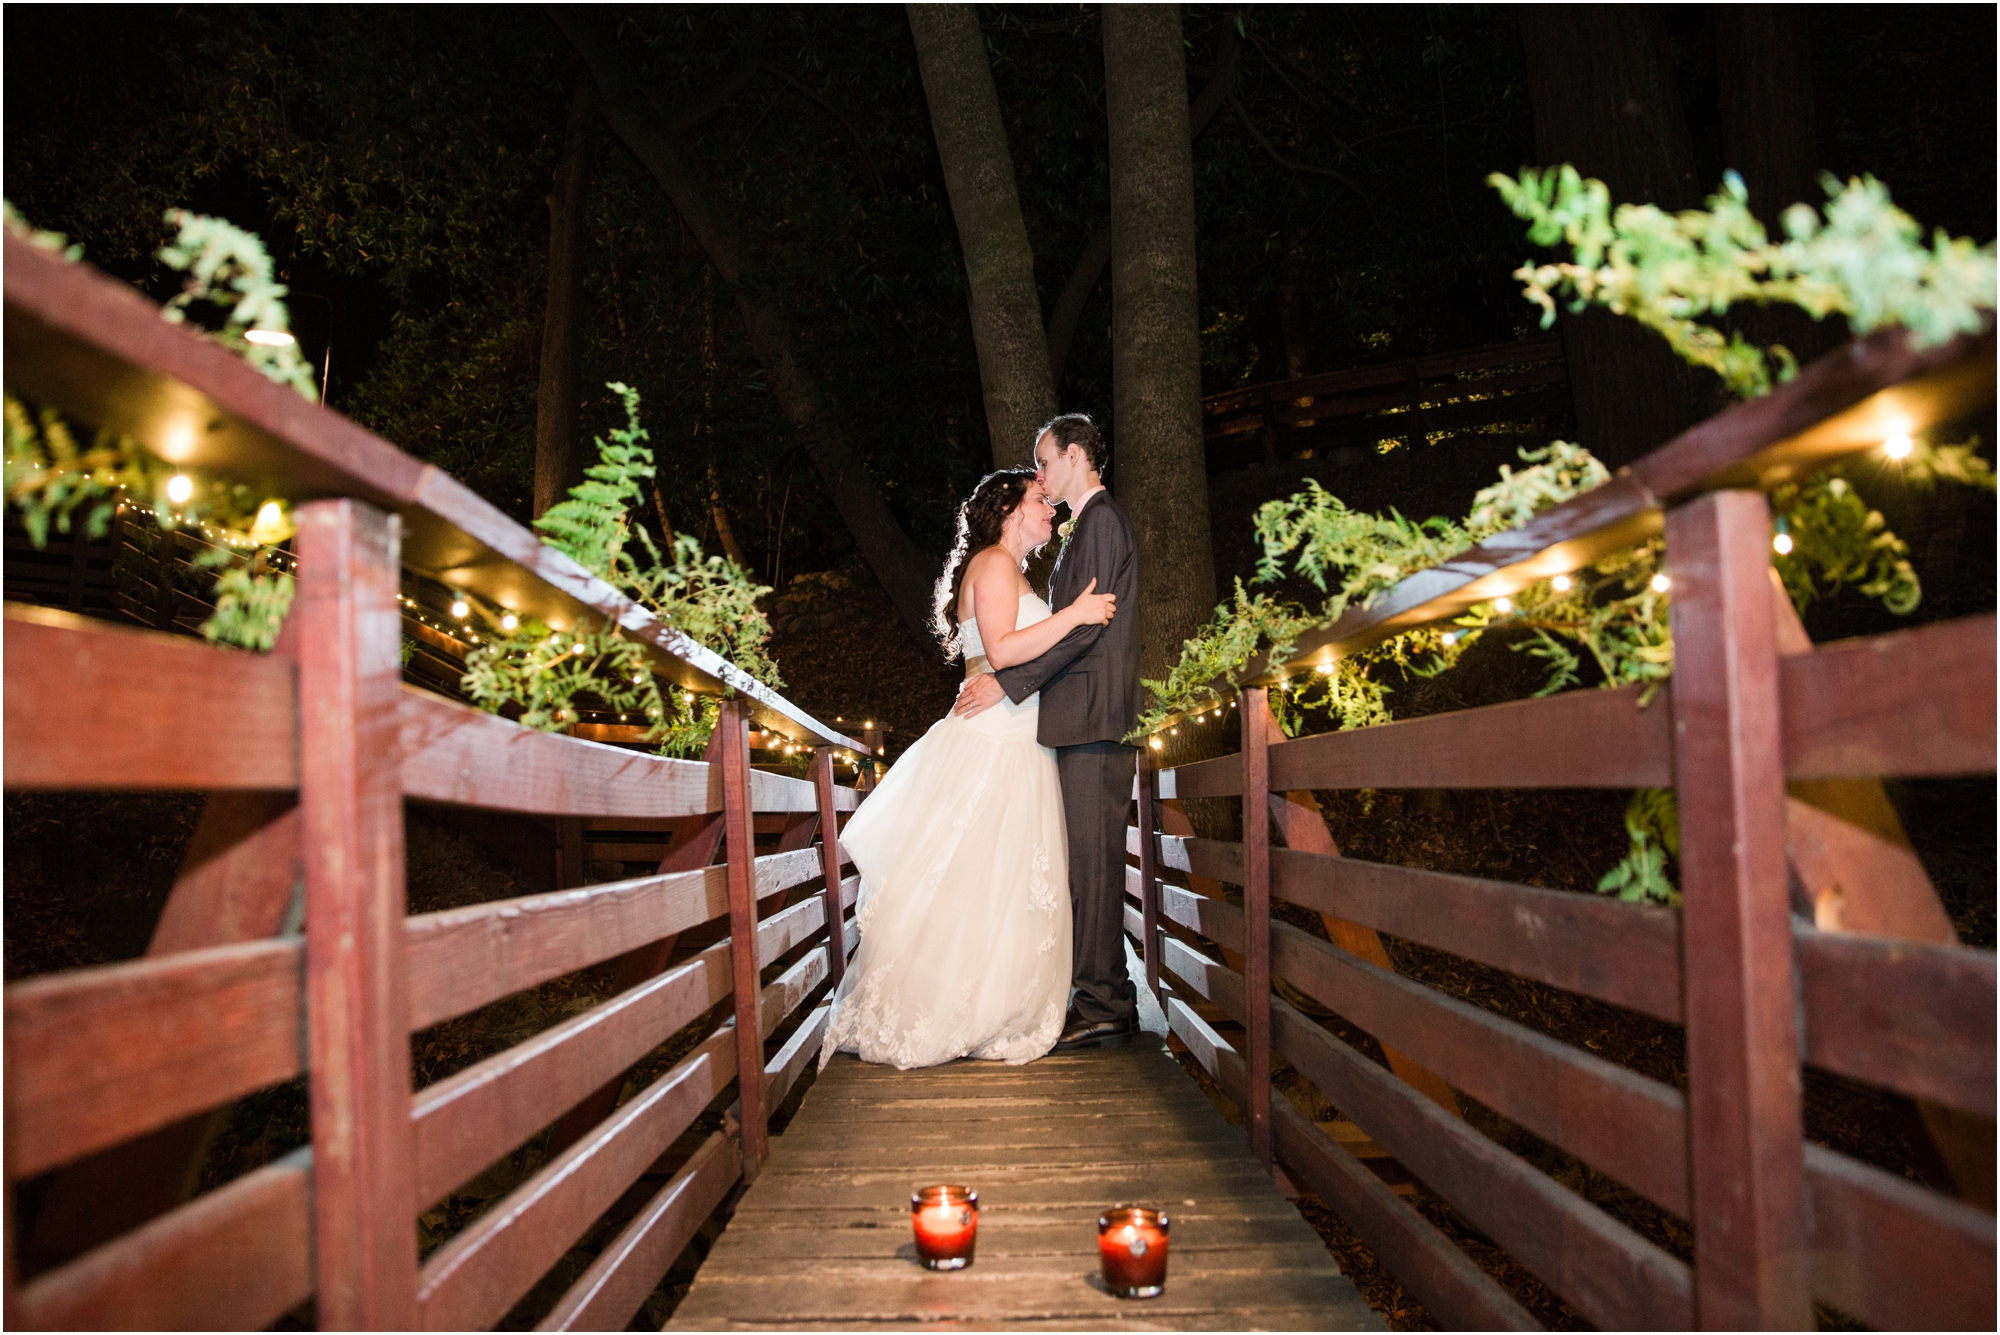 Saratoga Springs wedding pictures by Briana Calderon Photography_1909.jpg